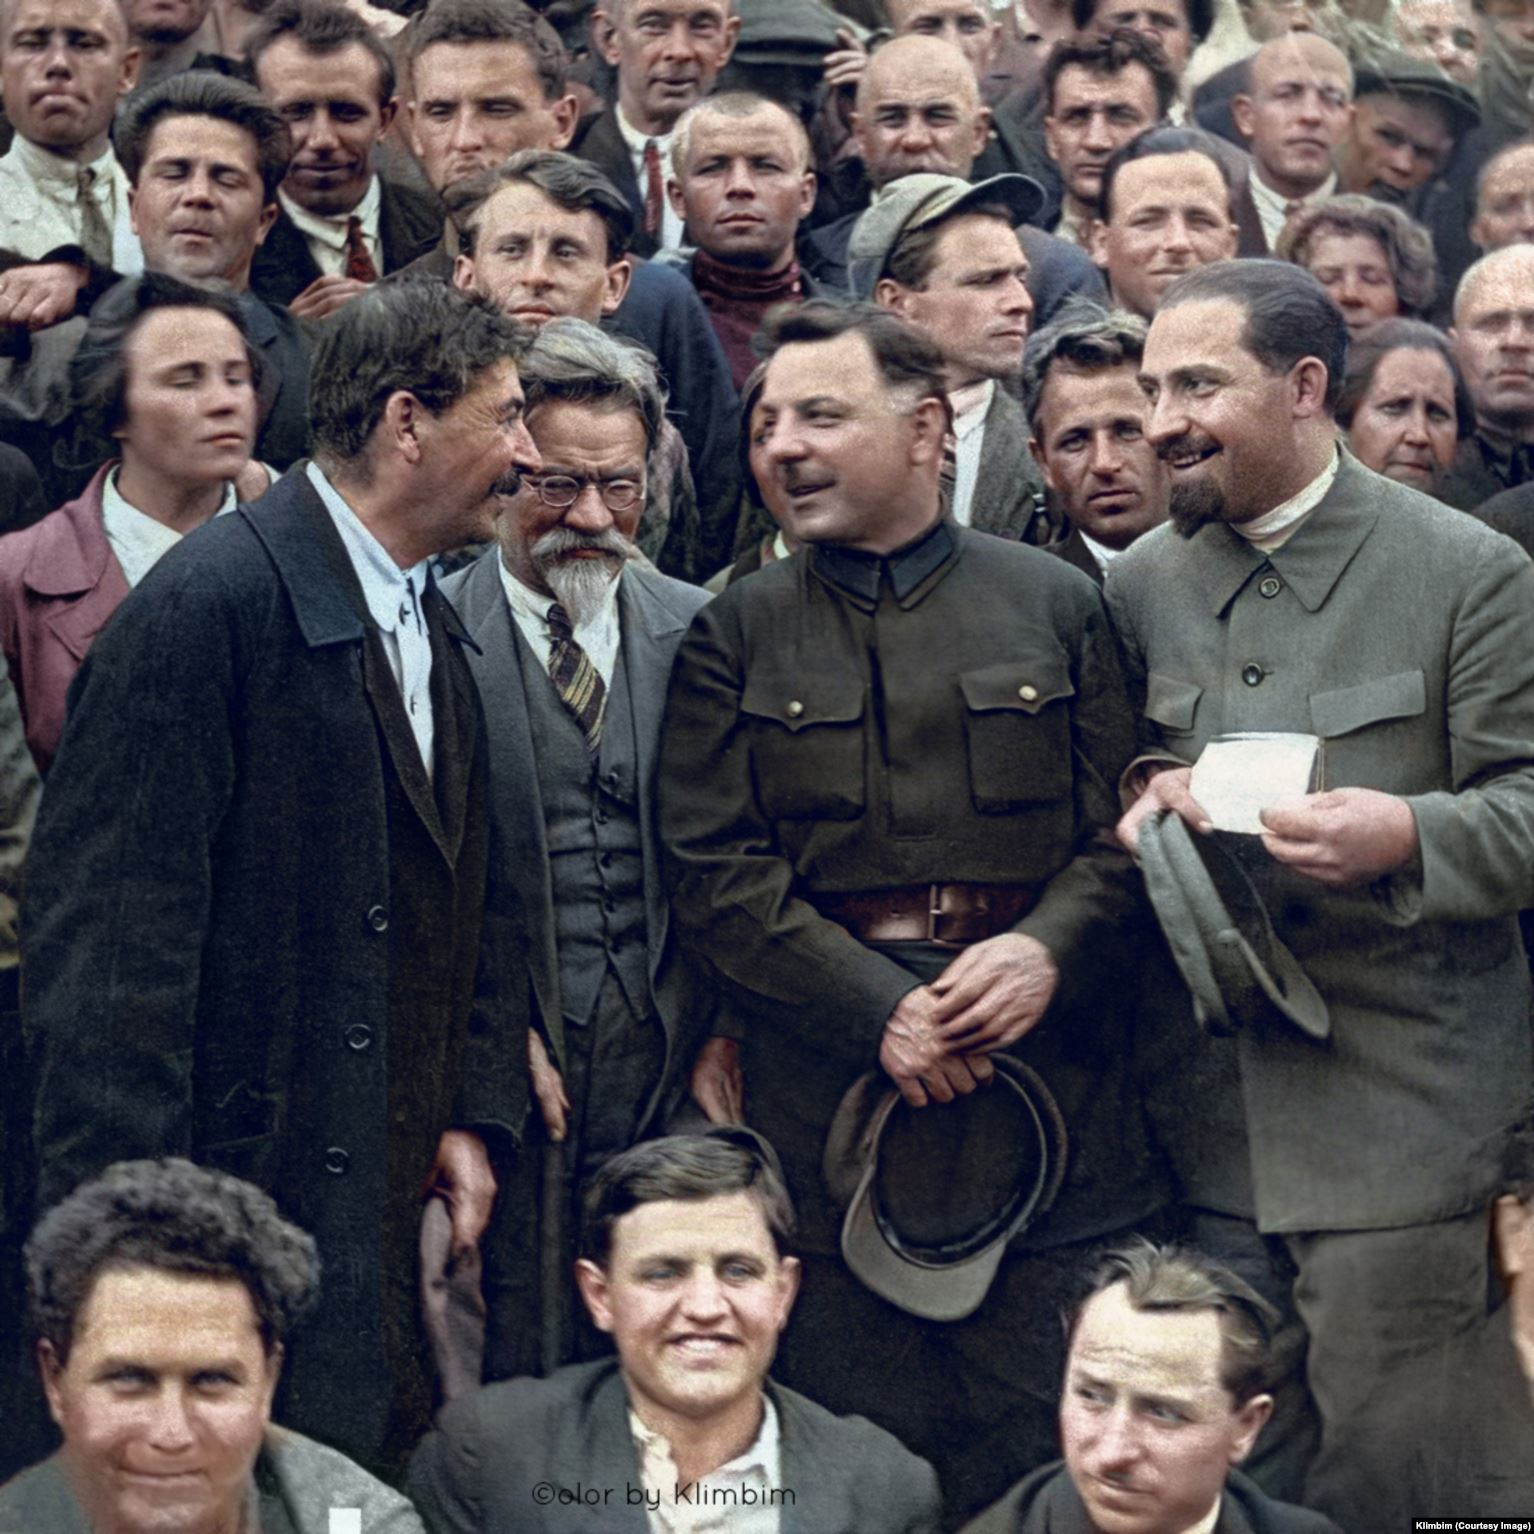 Soviet leaders Josef Stalin, Mikhail Kalinin (wearing glasses), Kliment Voroshilov and Lazar Kaganovich (standing, left to right) in 1930. Among other acts of political terror, all four men were behind the 1940 execution of some 22,000 of Poland's top military officers, policemen, and academics seen as likely to resist Soviet communist rule in the Katyn massacre. Shirnina says this photo was also posted without problem on Facebook and Instagram.